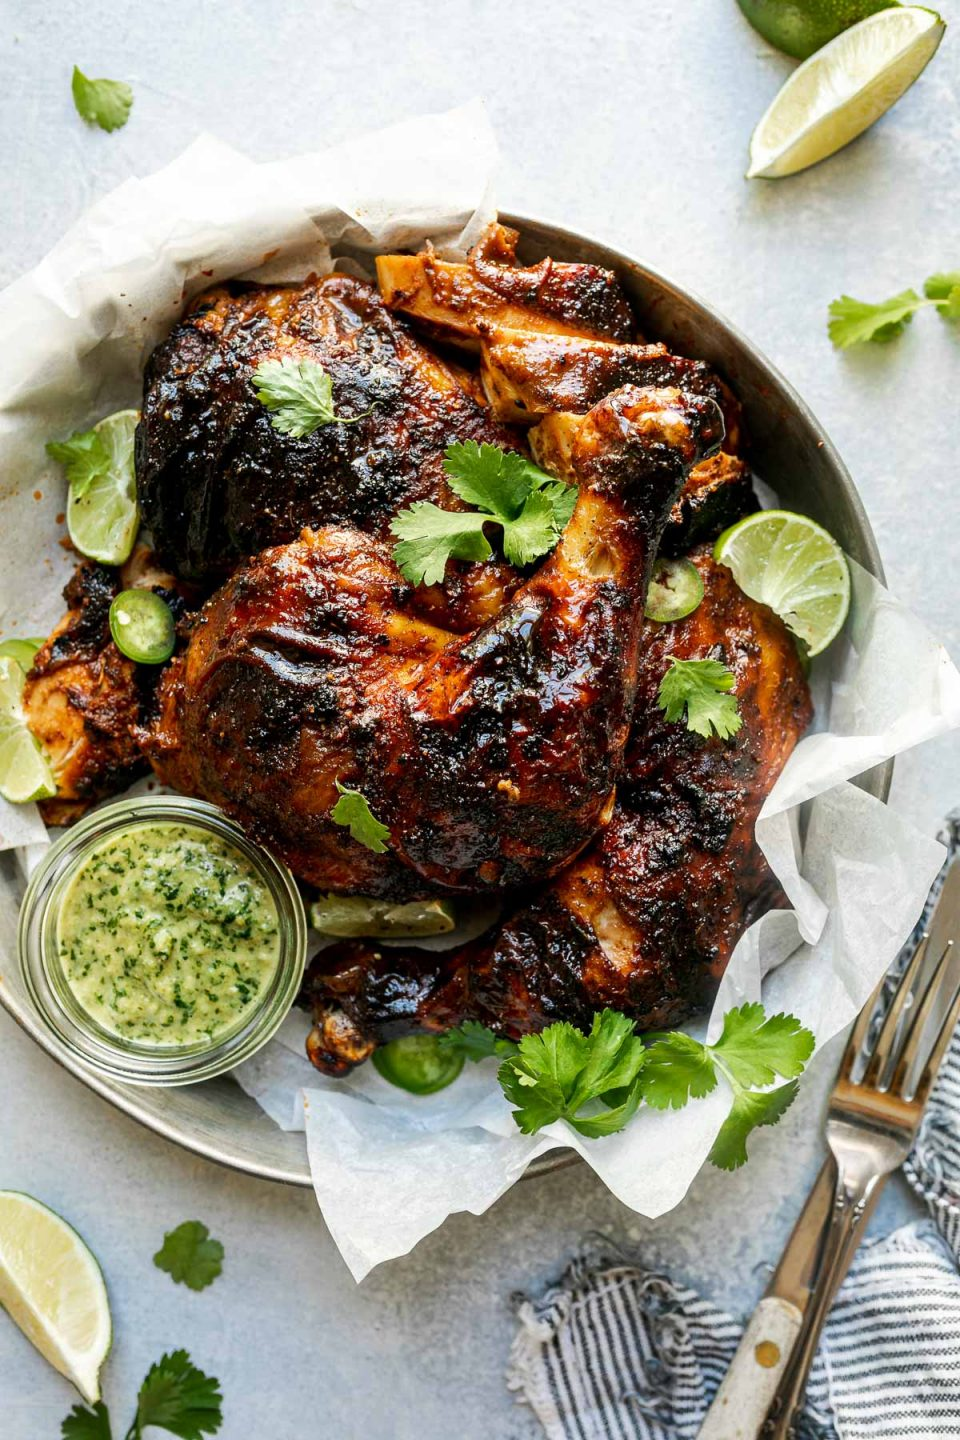 Butchered grilled whole chicken in a tin tray, topped with lime wedges, sliced jalapeno, & cilantro leaves. The tray sits atop a light blue surface, surrounded by fresh lime wedges, cilantro leaves, & a dark gray & white striped linen napkin.